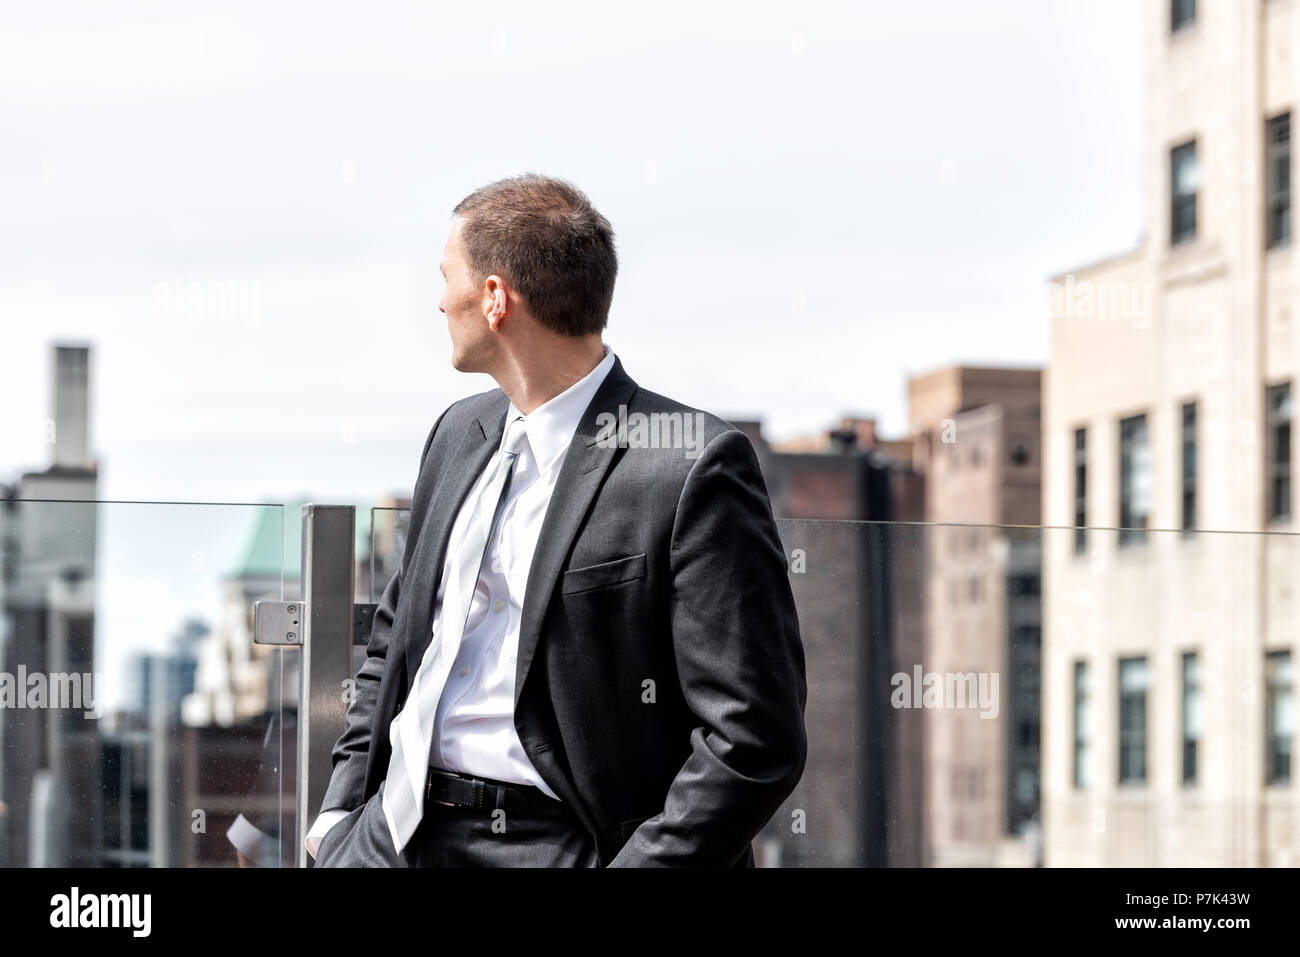 Young businessman standing in business suit looking over shoulder at New York City cityscape skyline in midtown Manhattan after interview break at sky - Stock Image